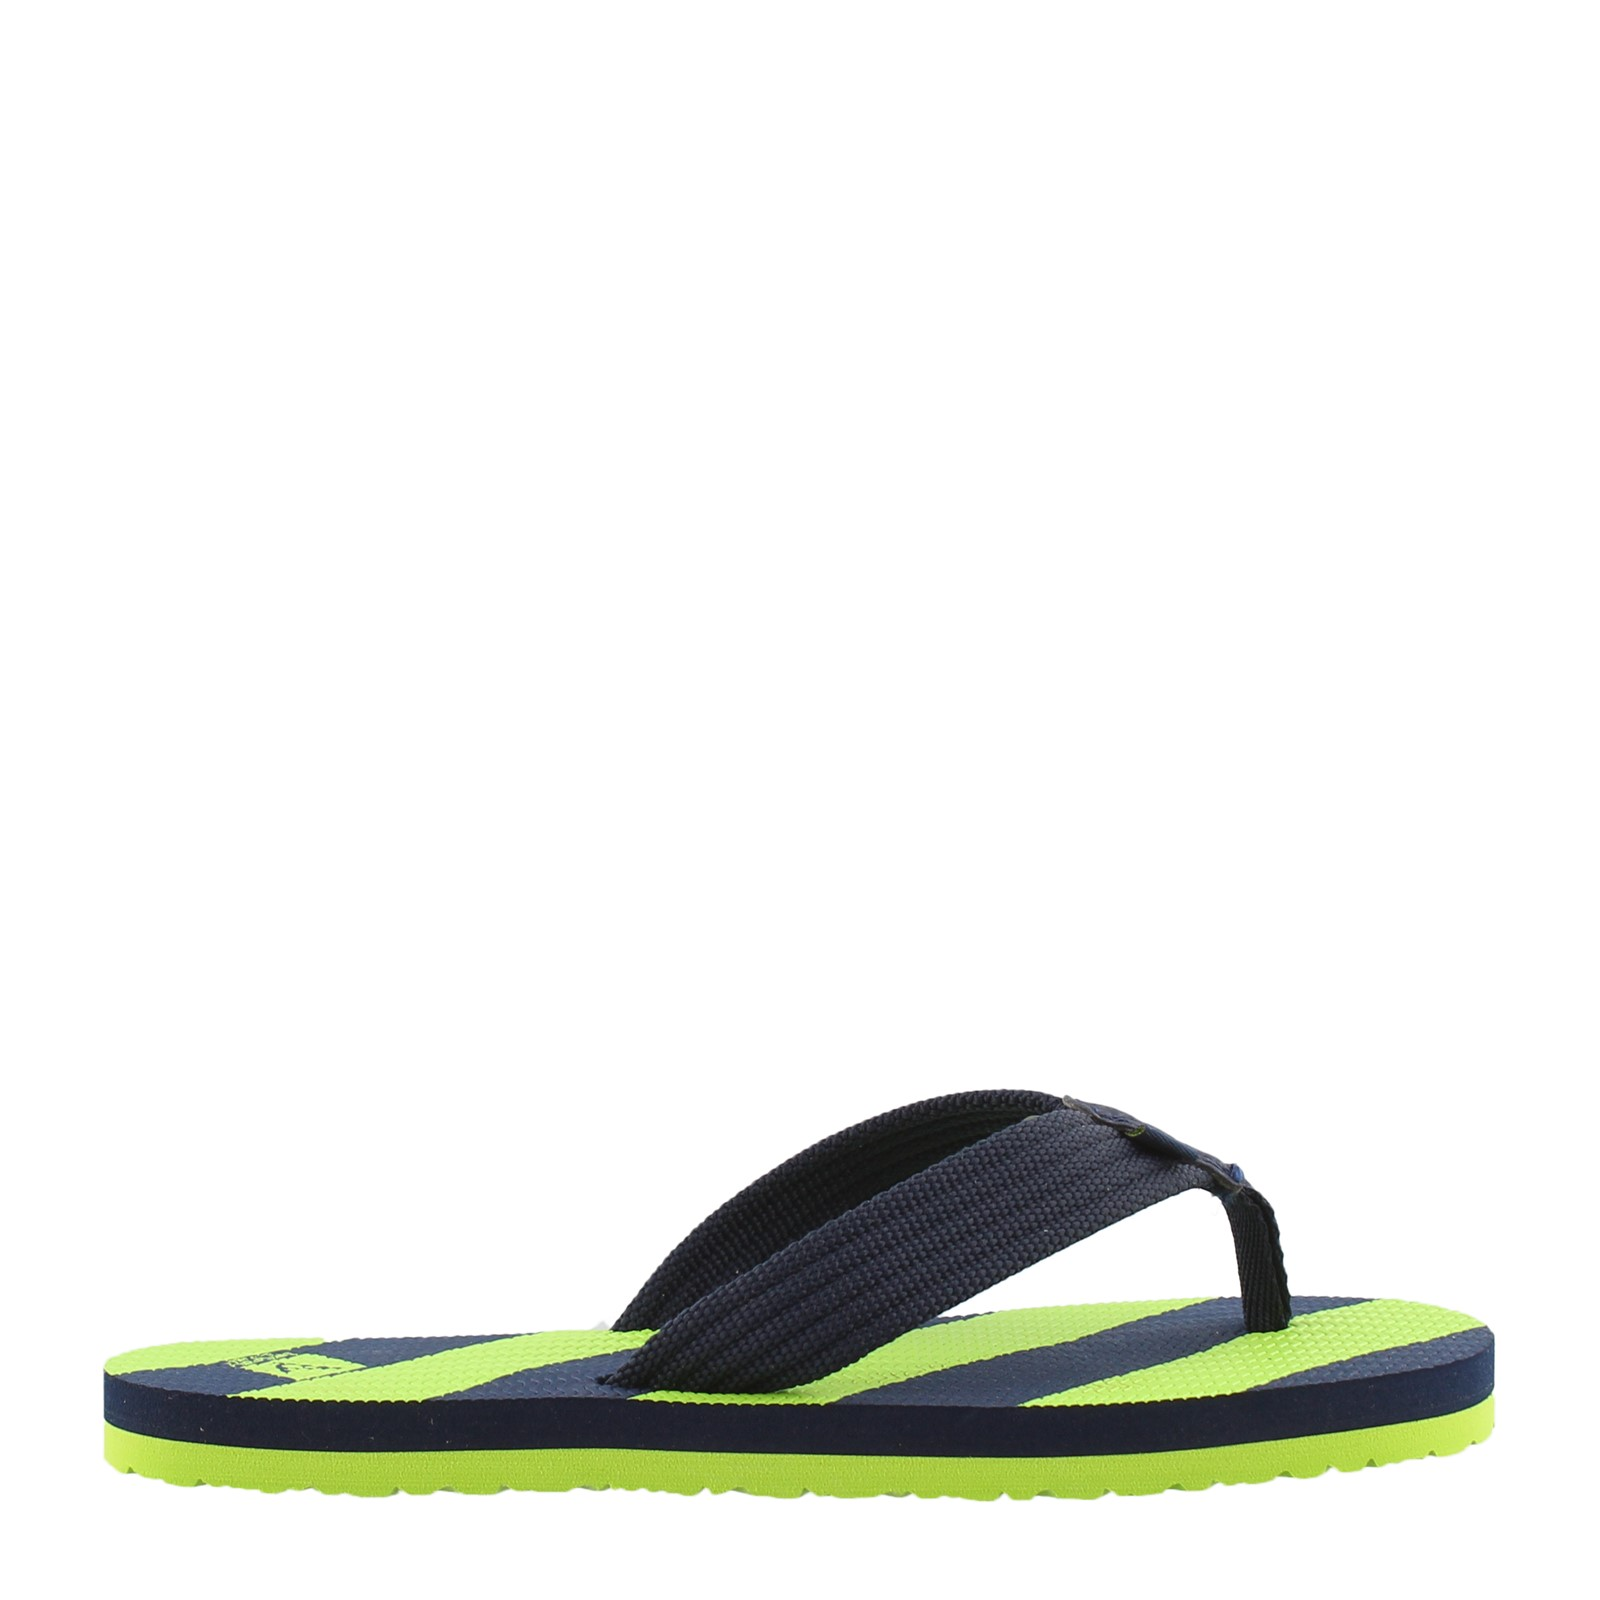 Boy's Sperry, Calypso Thong - Little Kid & Big Kid